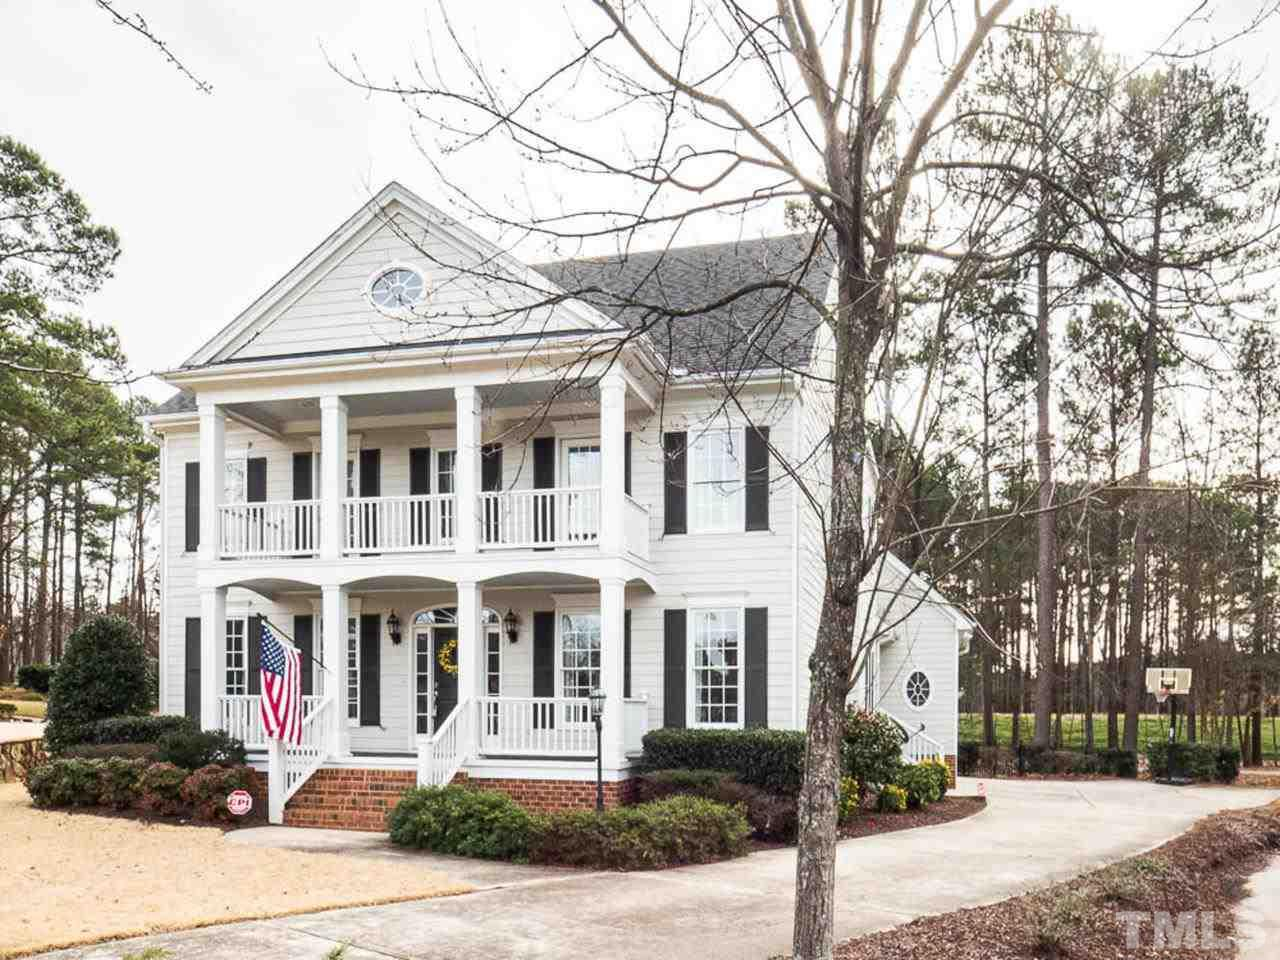 Charming Charleston  Home Located in Popular Preston Grande. 4 Bedrooms and 31/2 Baths. Shows Like A Model Home. Newly Refinished Hardwoods and Freshly Painted. Light, Bright and Airy. Open Kitchen/ Family Room. Large Master Suite and Spacious Secondary Bedrooms. Updated Baths. Great Bonus Room and Third Floor Rec Room. Great Lot on a Cul-De-Sac. Beautiful Golf Course View and Easy Golf Cart Access. Close to Prestonwood CC/ Great Location convenient to RTP and the Airport.  Best Schools in the Area